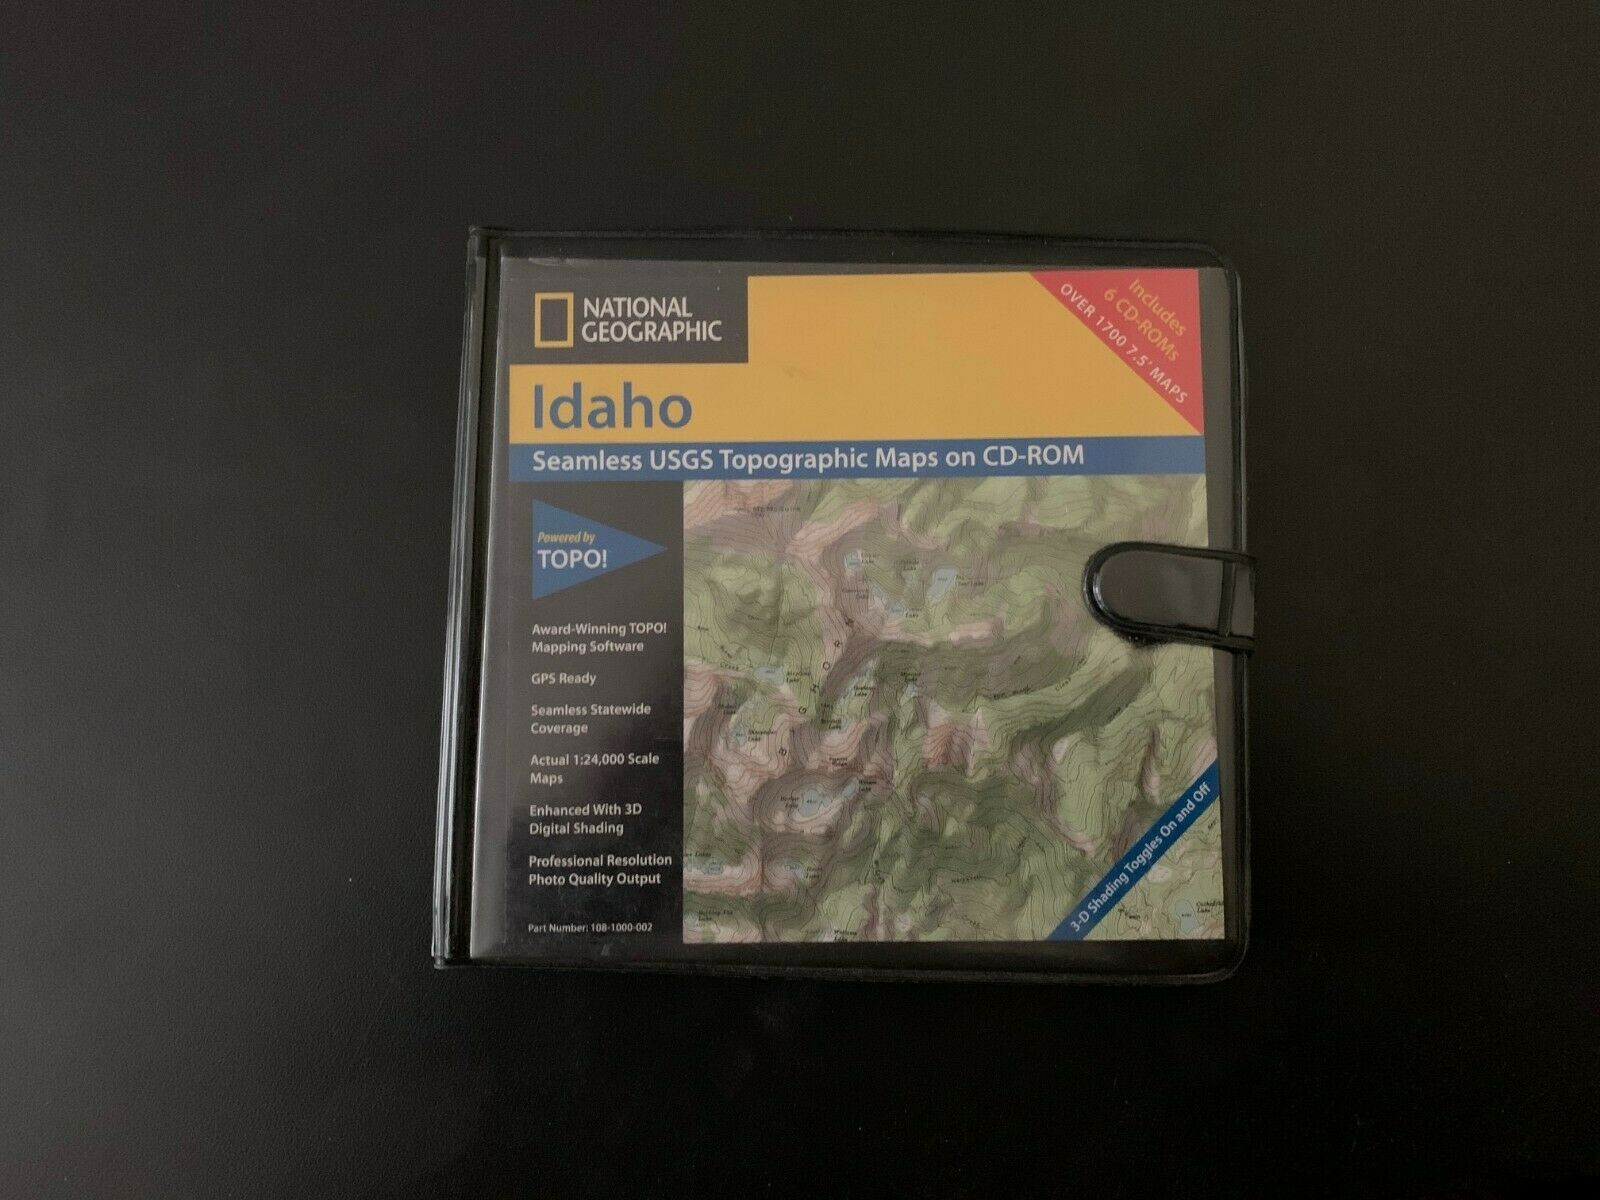 National Geographic Topo Idaho Mapping Software USGS Quad Maps - $32.00